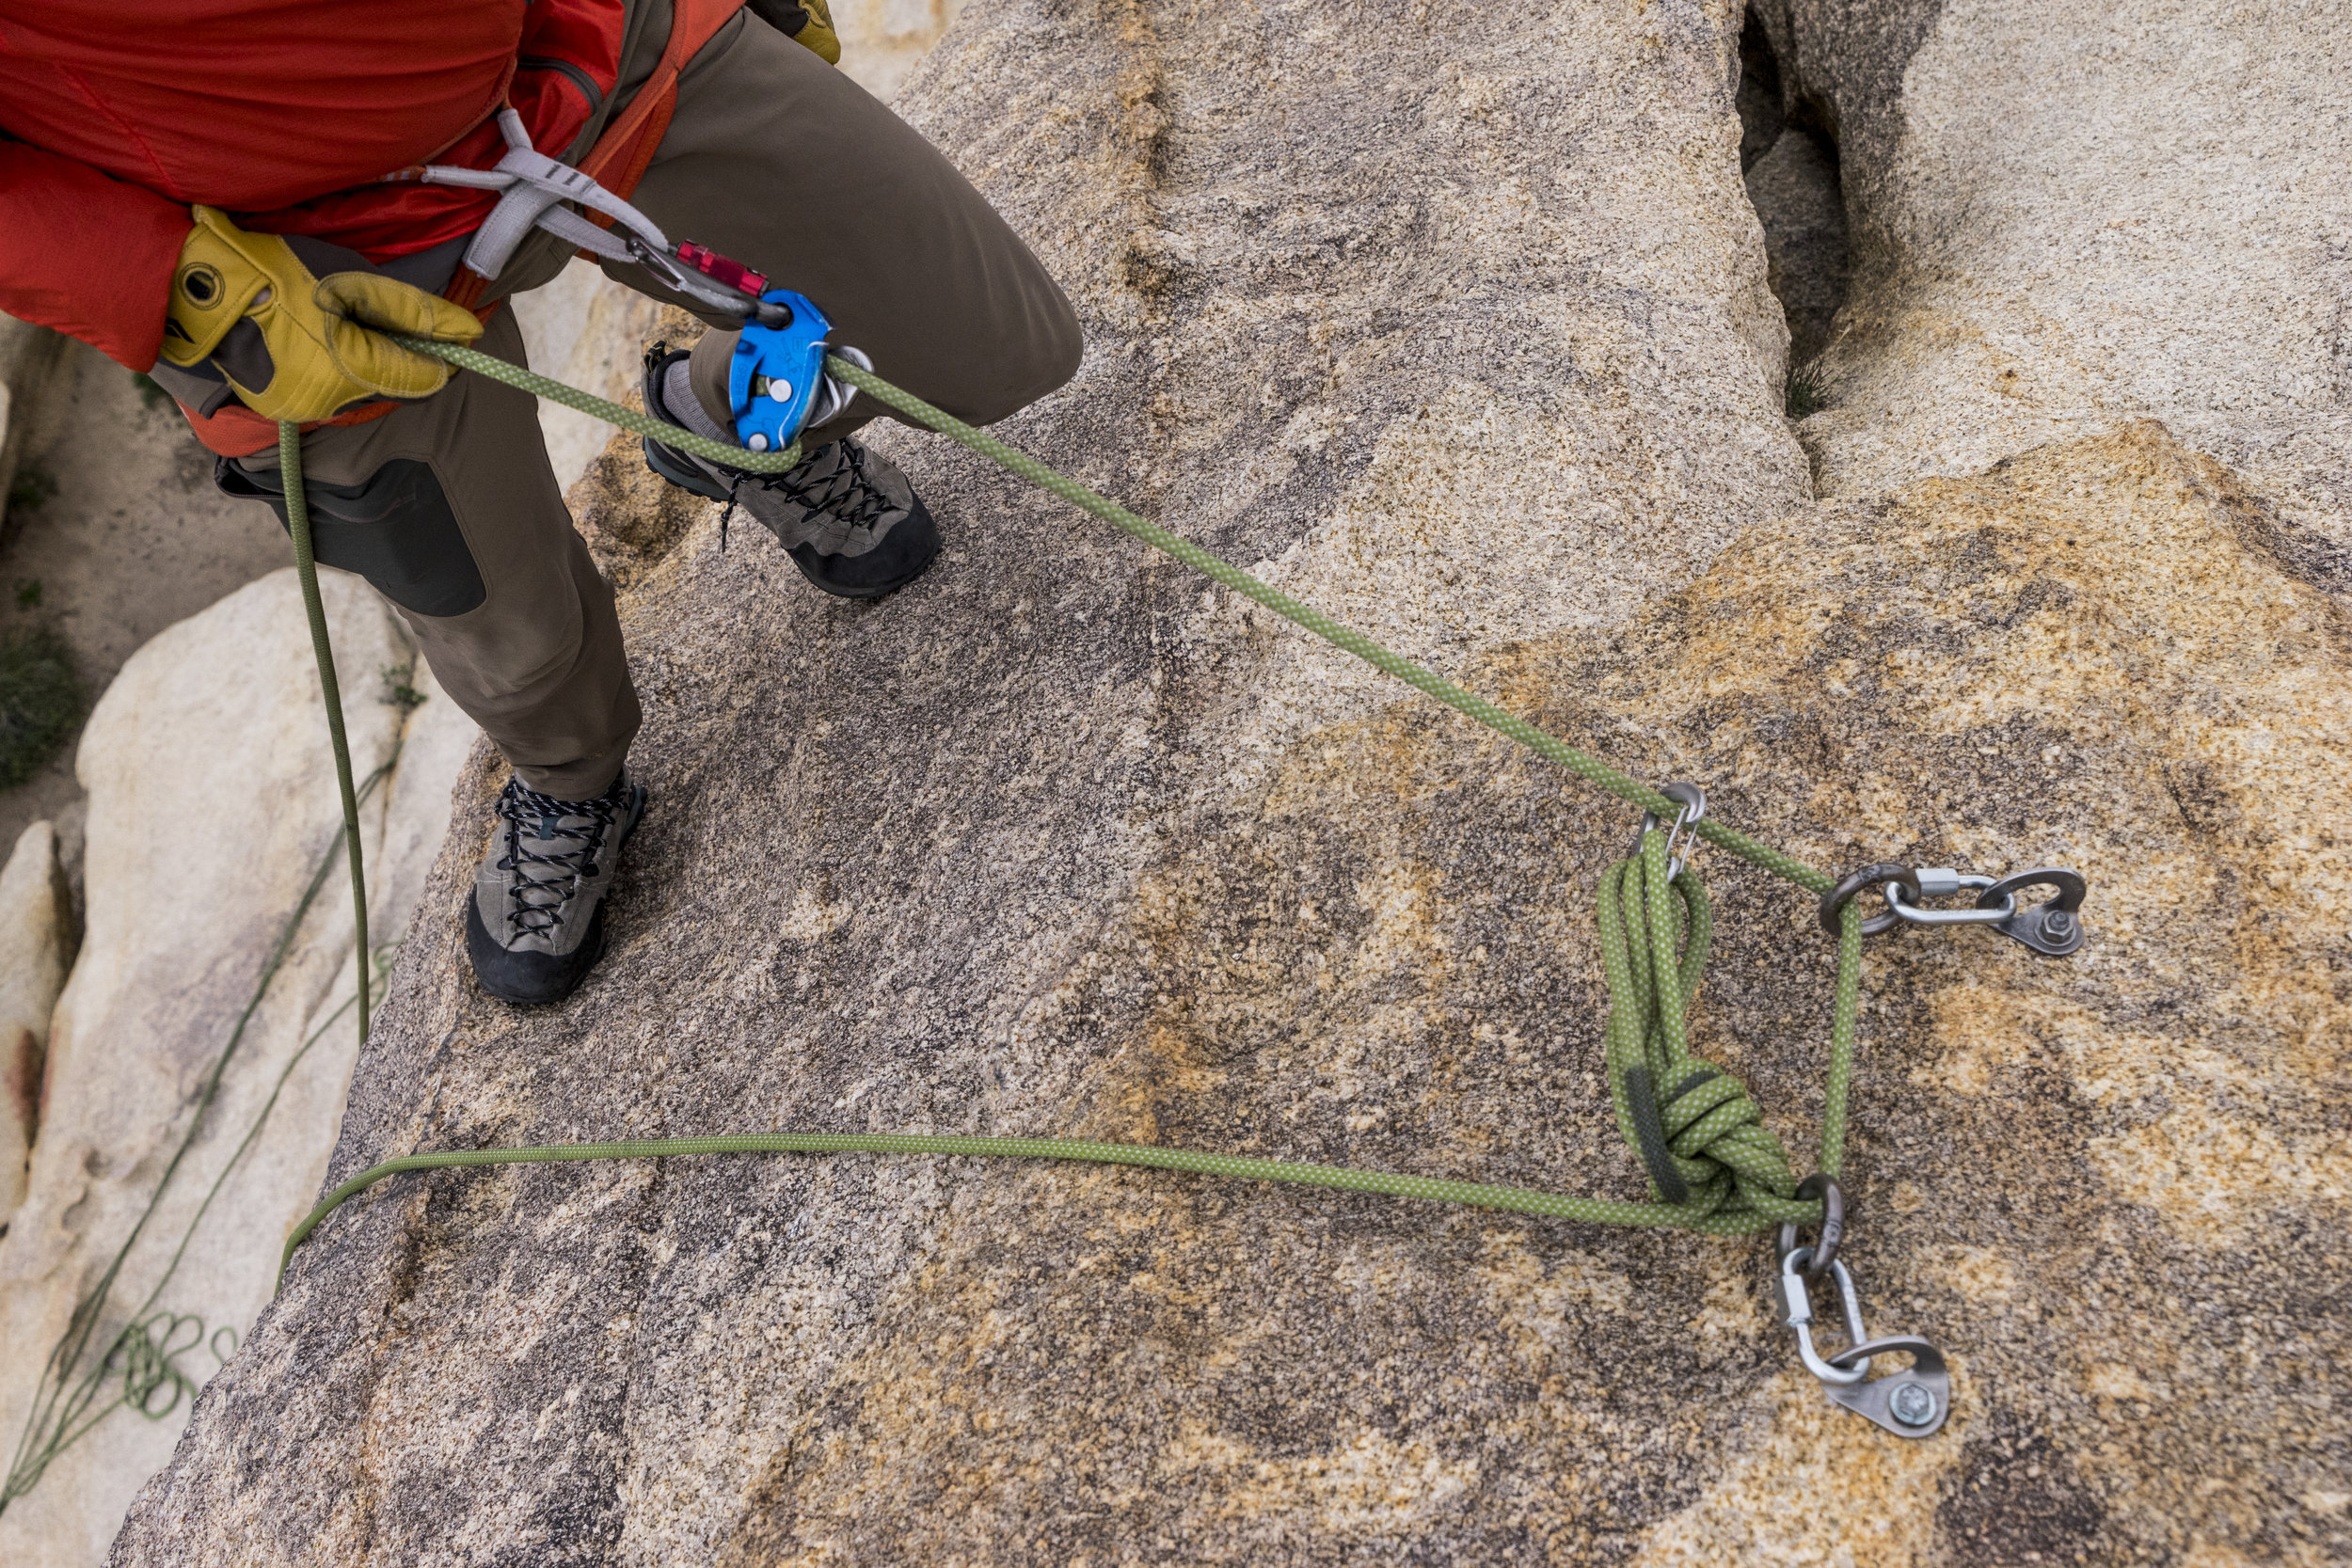 """When a single strand of rope is fixed, blocked, or counterweighted, an ABD can be used for rappelling.  """"Rappelling with GRIGRI takes training, and it is important to system check ensuring proper rigging and connection.""""-Petzl"""